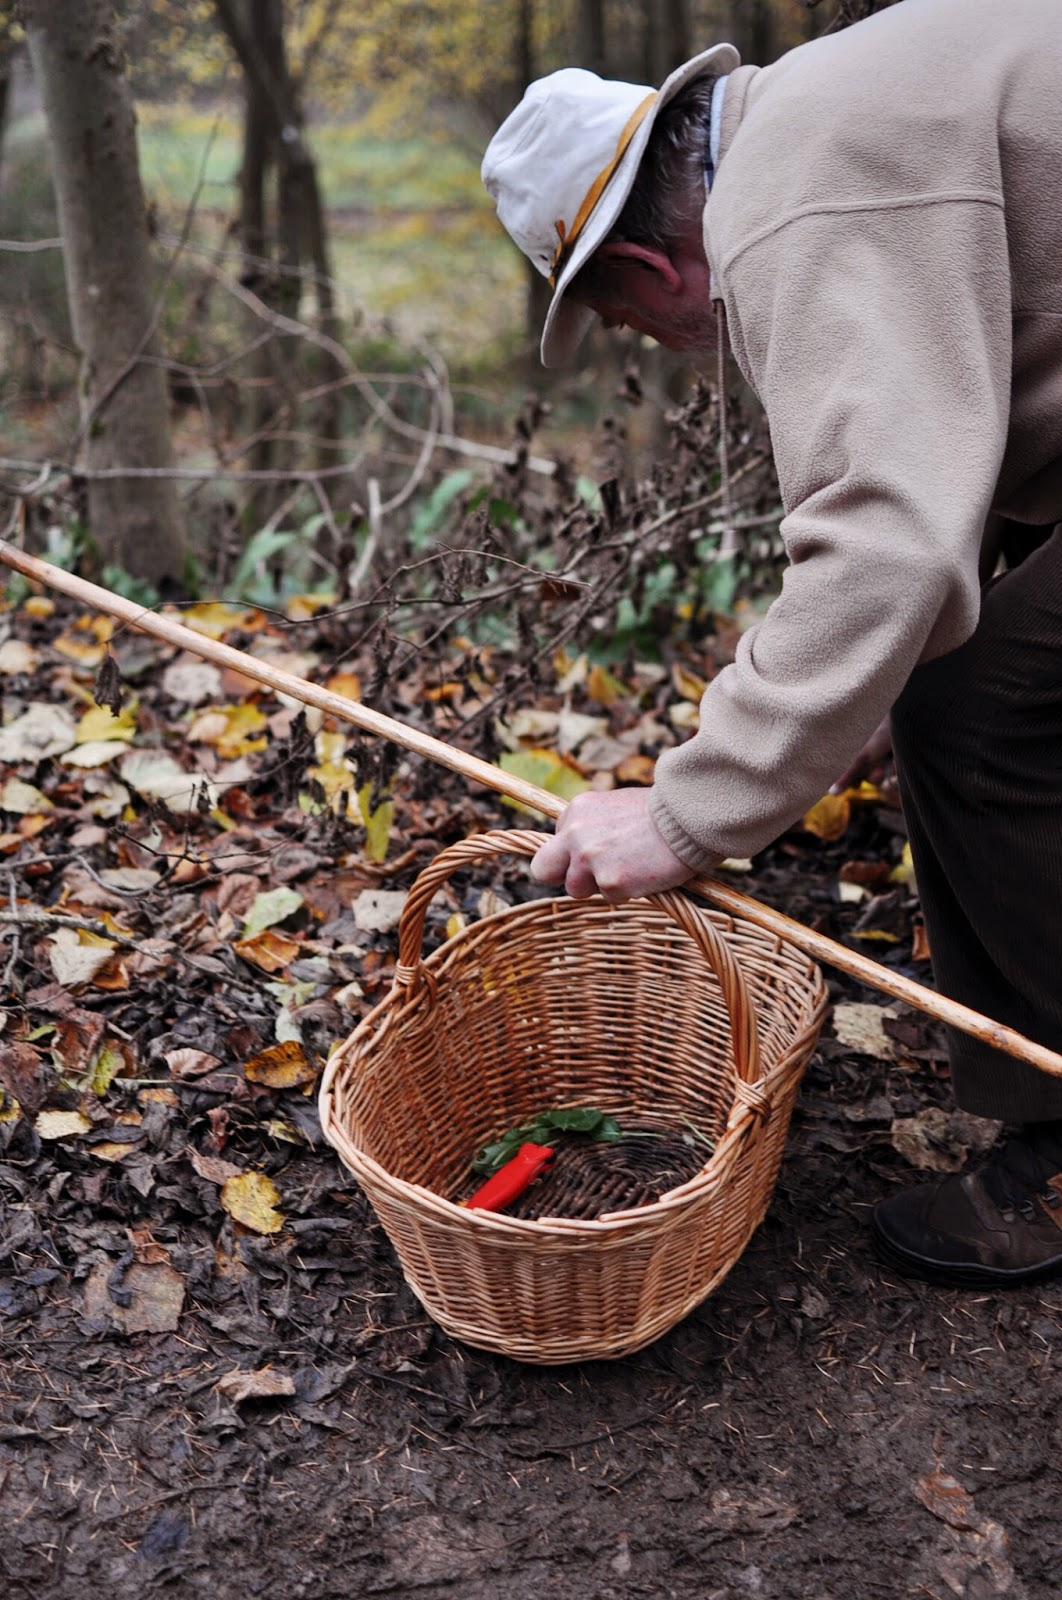 foraging, foraged foods, edible wild plants, wild foods, wild mushrooms, wild edibles, tudor farmhouse hotel, forest of dean, hotel stays in Southwest, southwest hotels, farm retreat